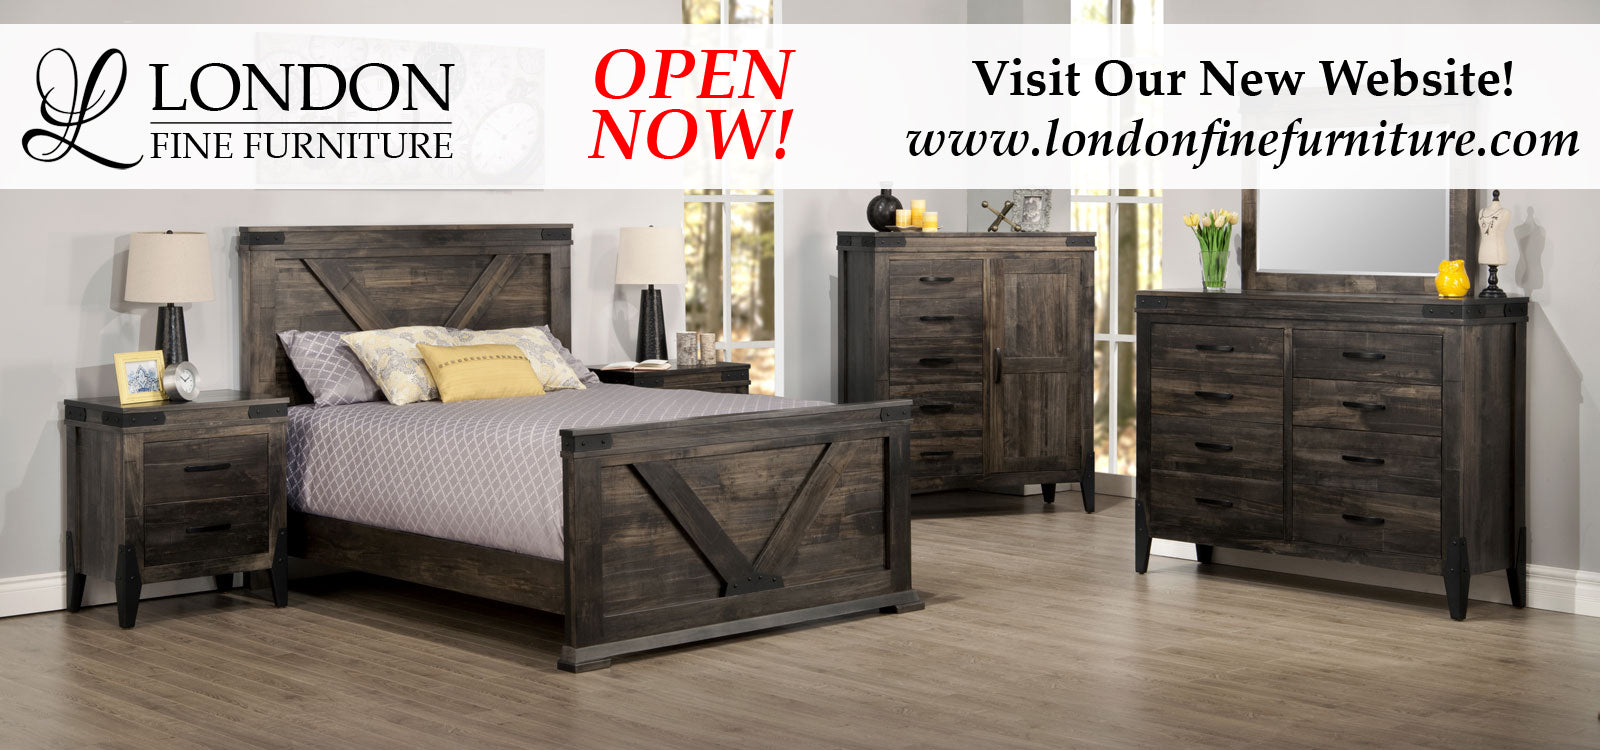 London furniture storeLondon Furniture Store Quality Wood Canadian Made Bedroom  . Furniture Stores London Ontario Area. Home Design Ideas